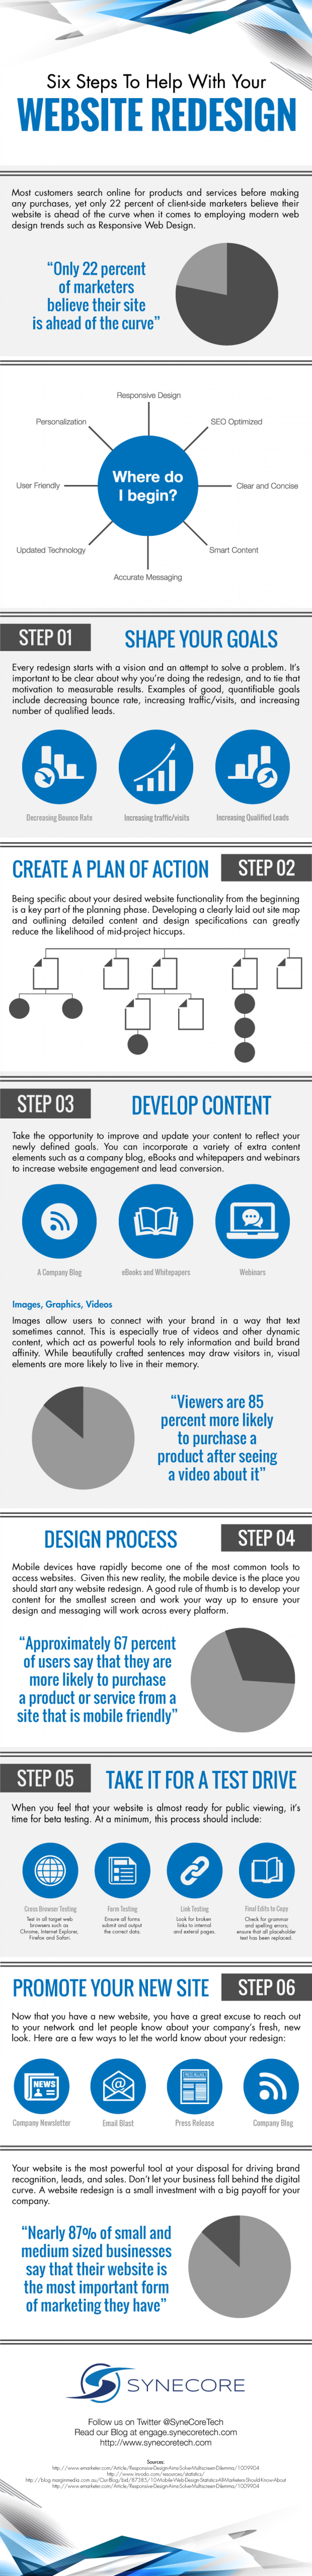 Six Steps to Help With Your Website Redesign Infographic